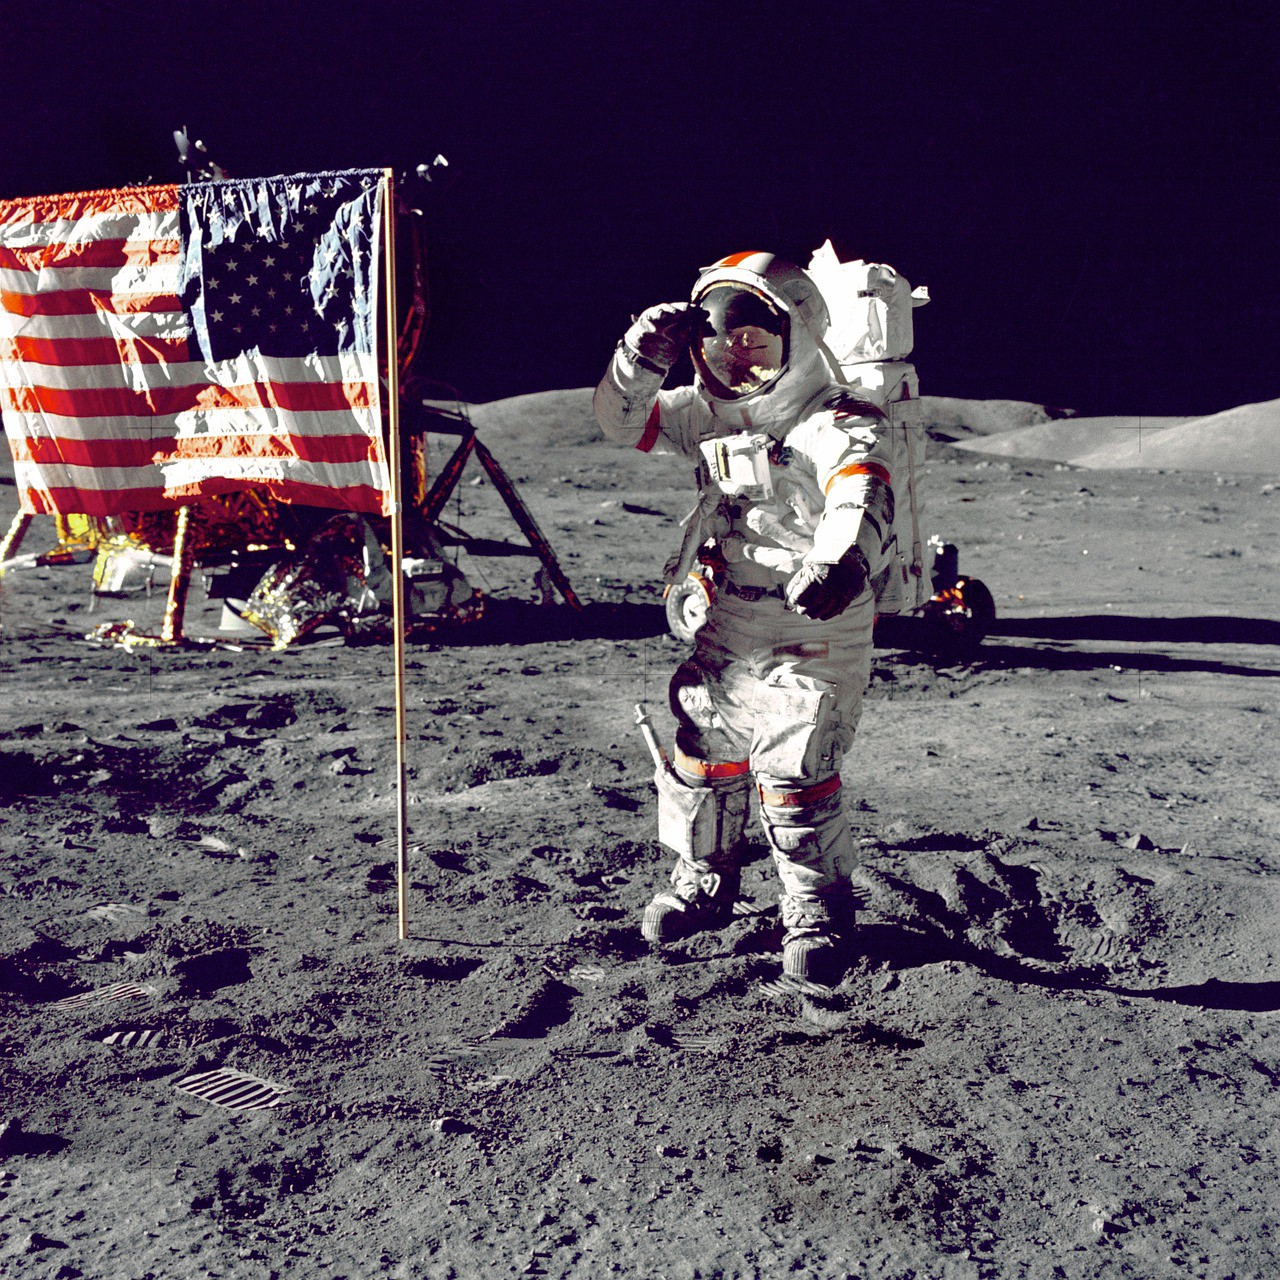 Moonshot Thinking: America Puts a Man on the Moon. He is saluting next to an American Flag.